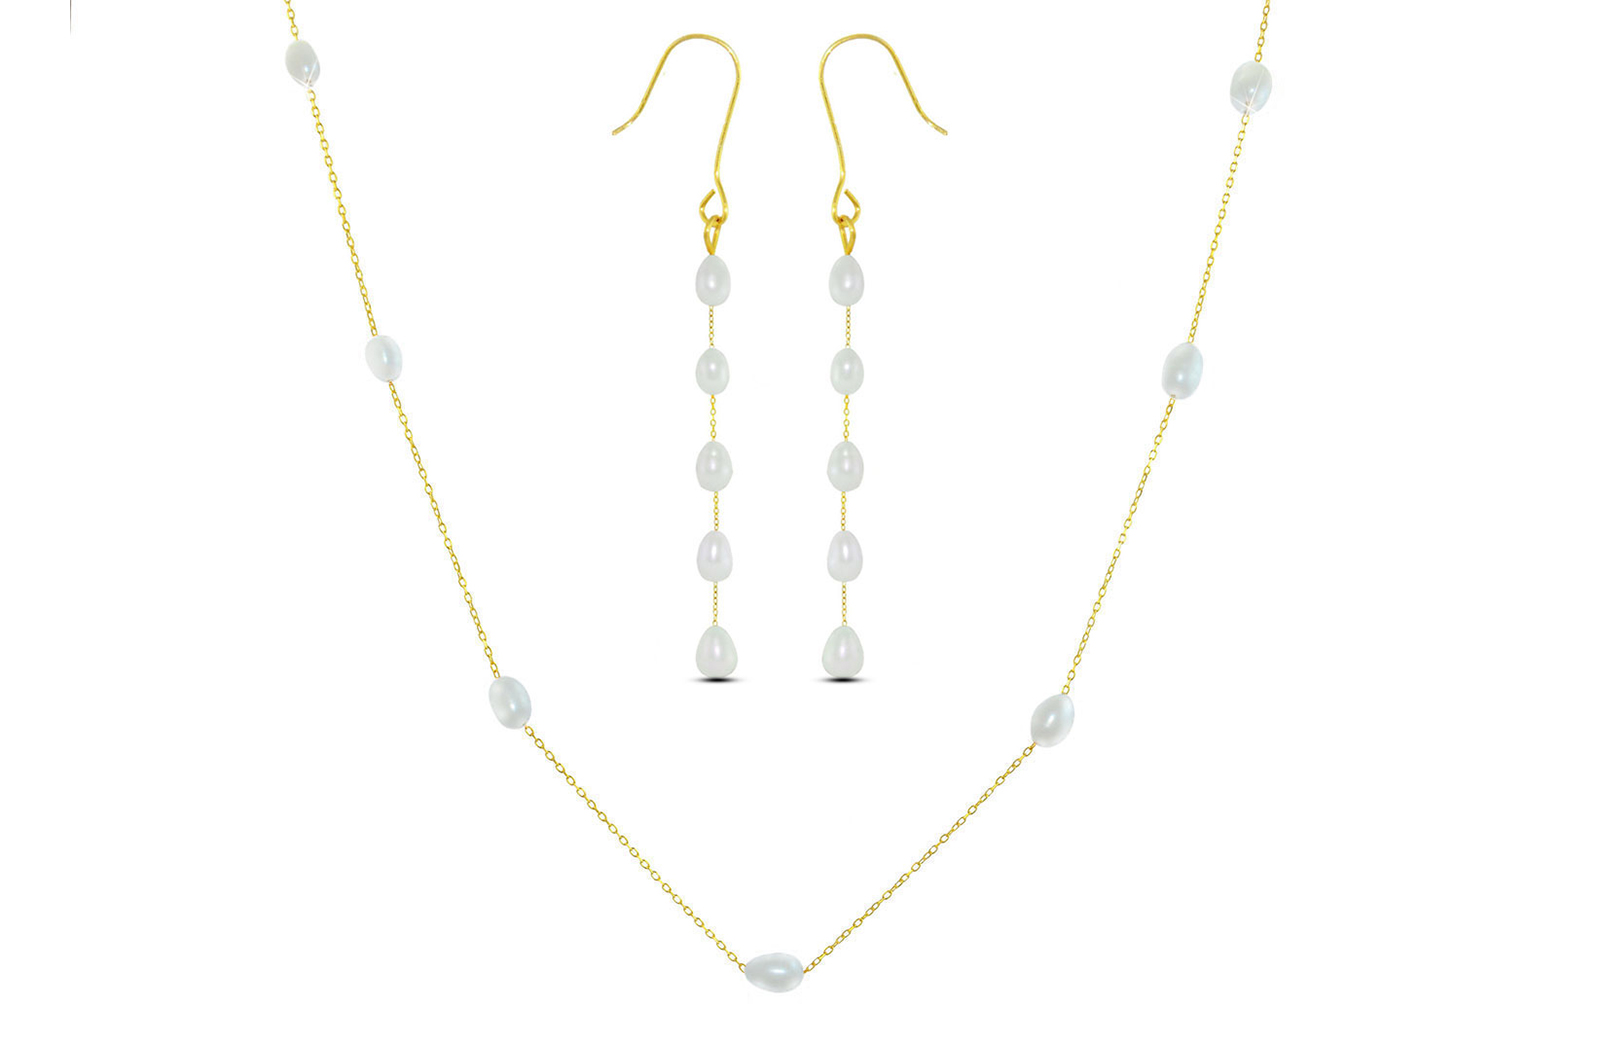 Vera Perla 18K Gold  White Pearls Jewelry Set - 2 pcs.